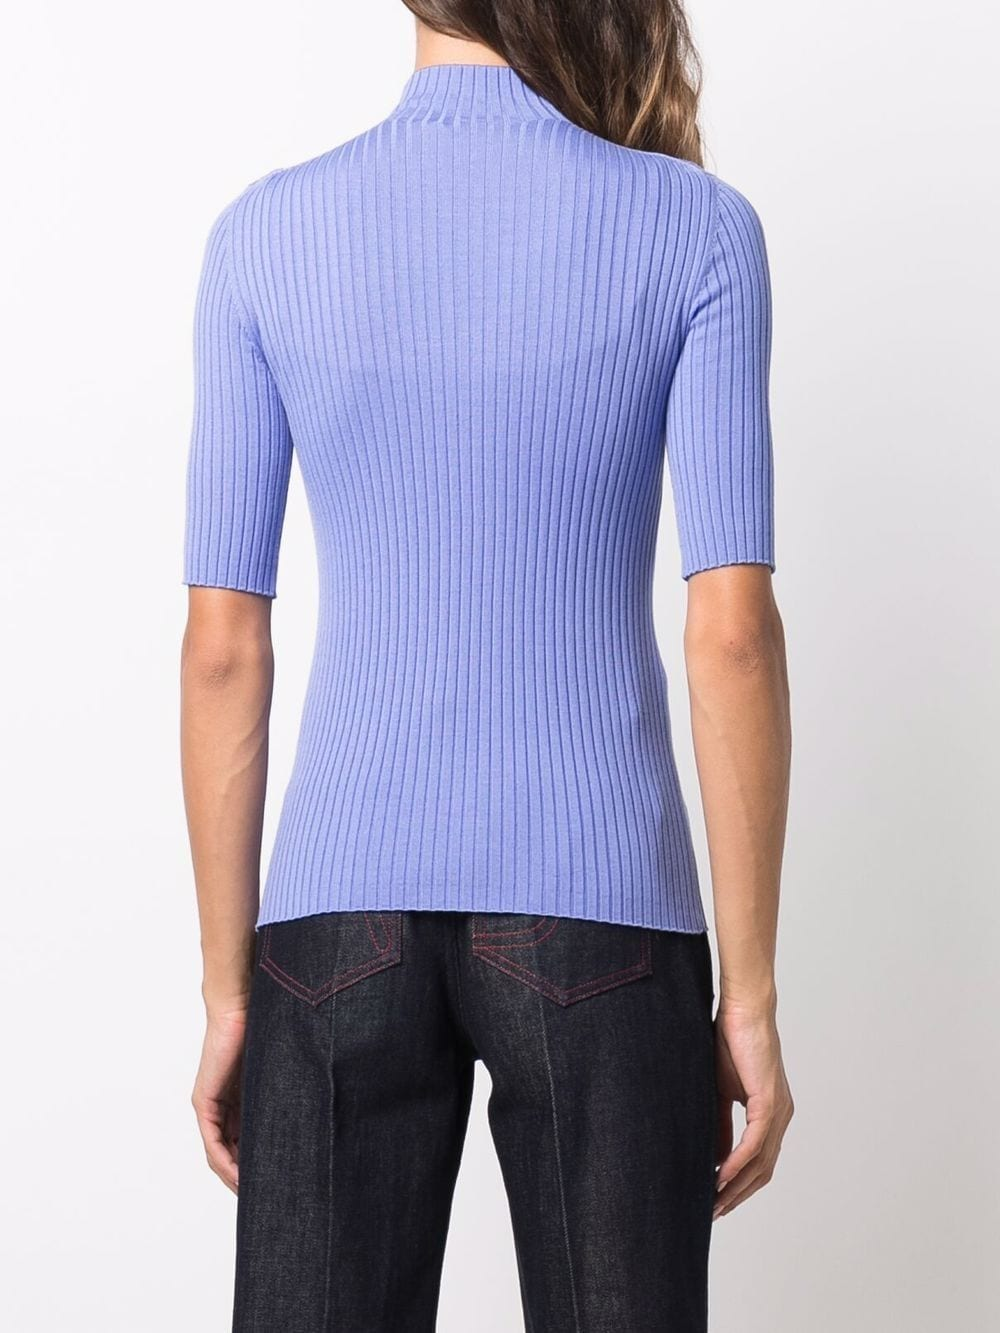 Picture of Mrz | Craterino Costa Ribbed-Knit Top